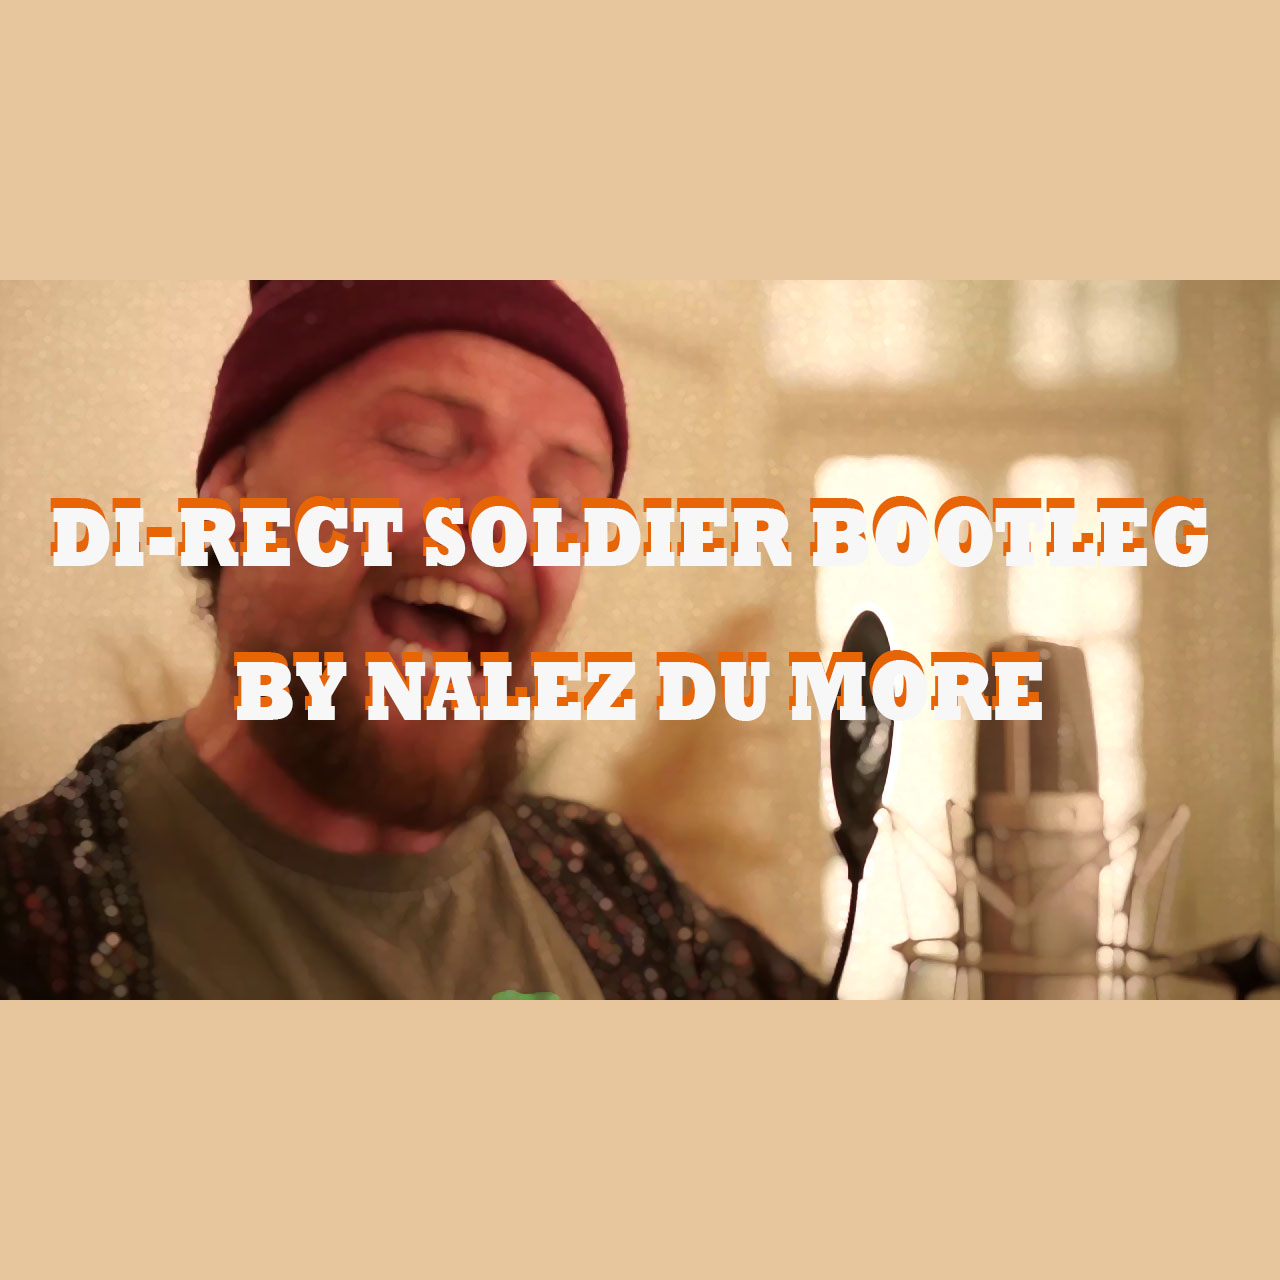 Di rect Soldier on Bootleg (faster)